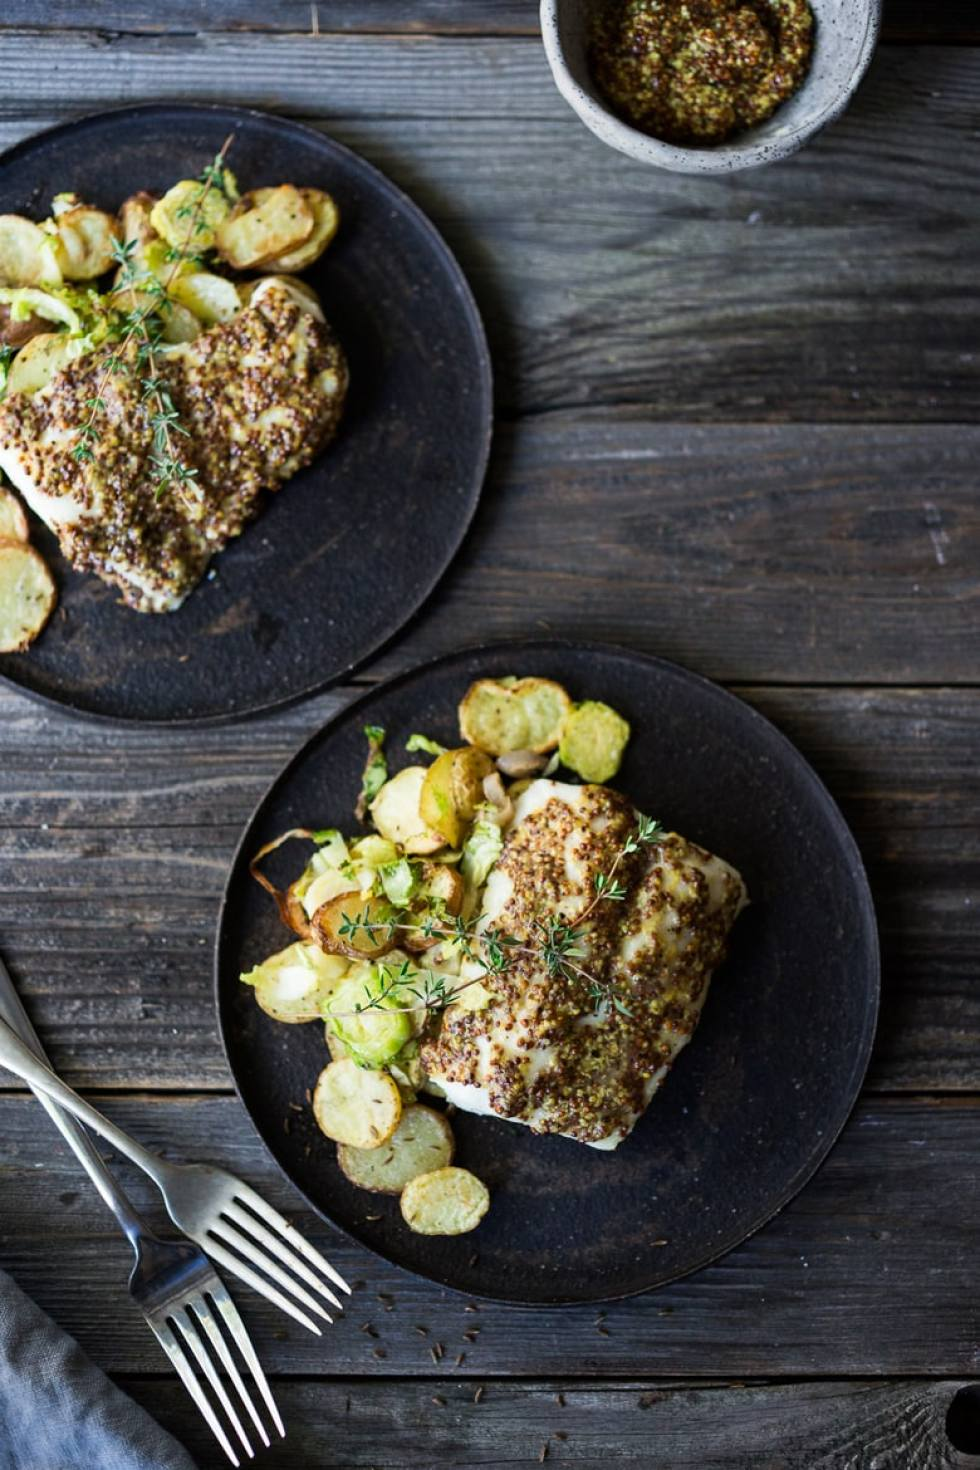 Roasted Mustard Seed White Fish with Potato-Brussel Sprout Hash, a simple, healthy sheet-pan dinner that is quick, easy and full of flavor. | www.feastingathome.com